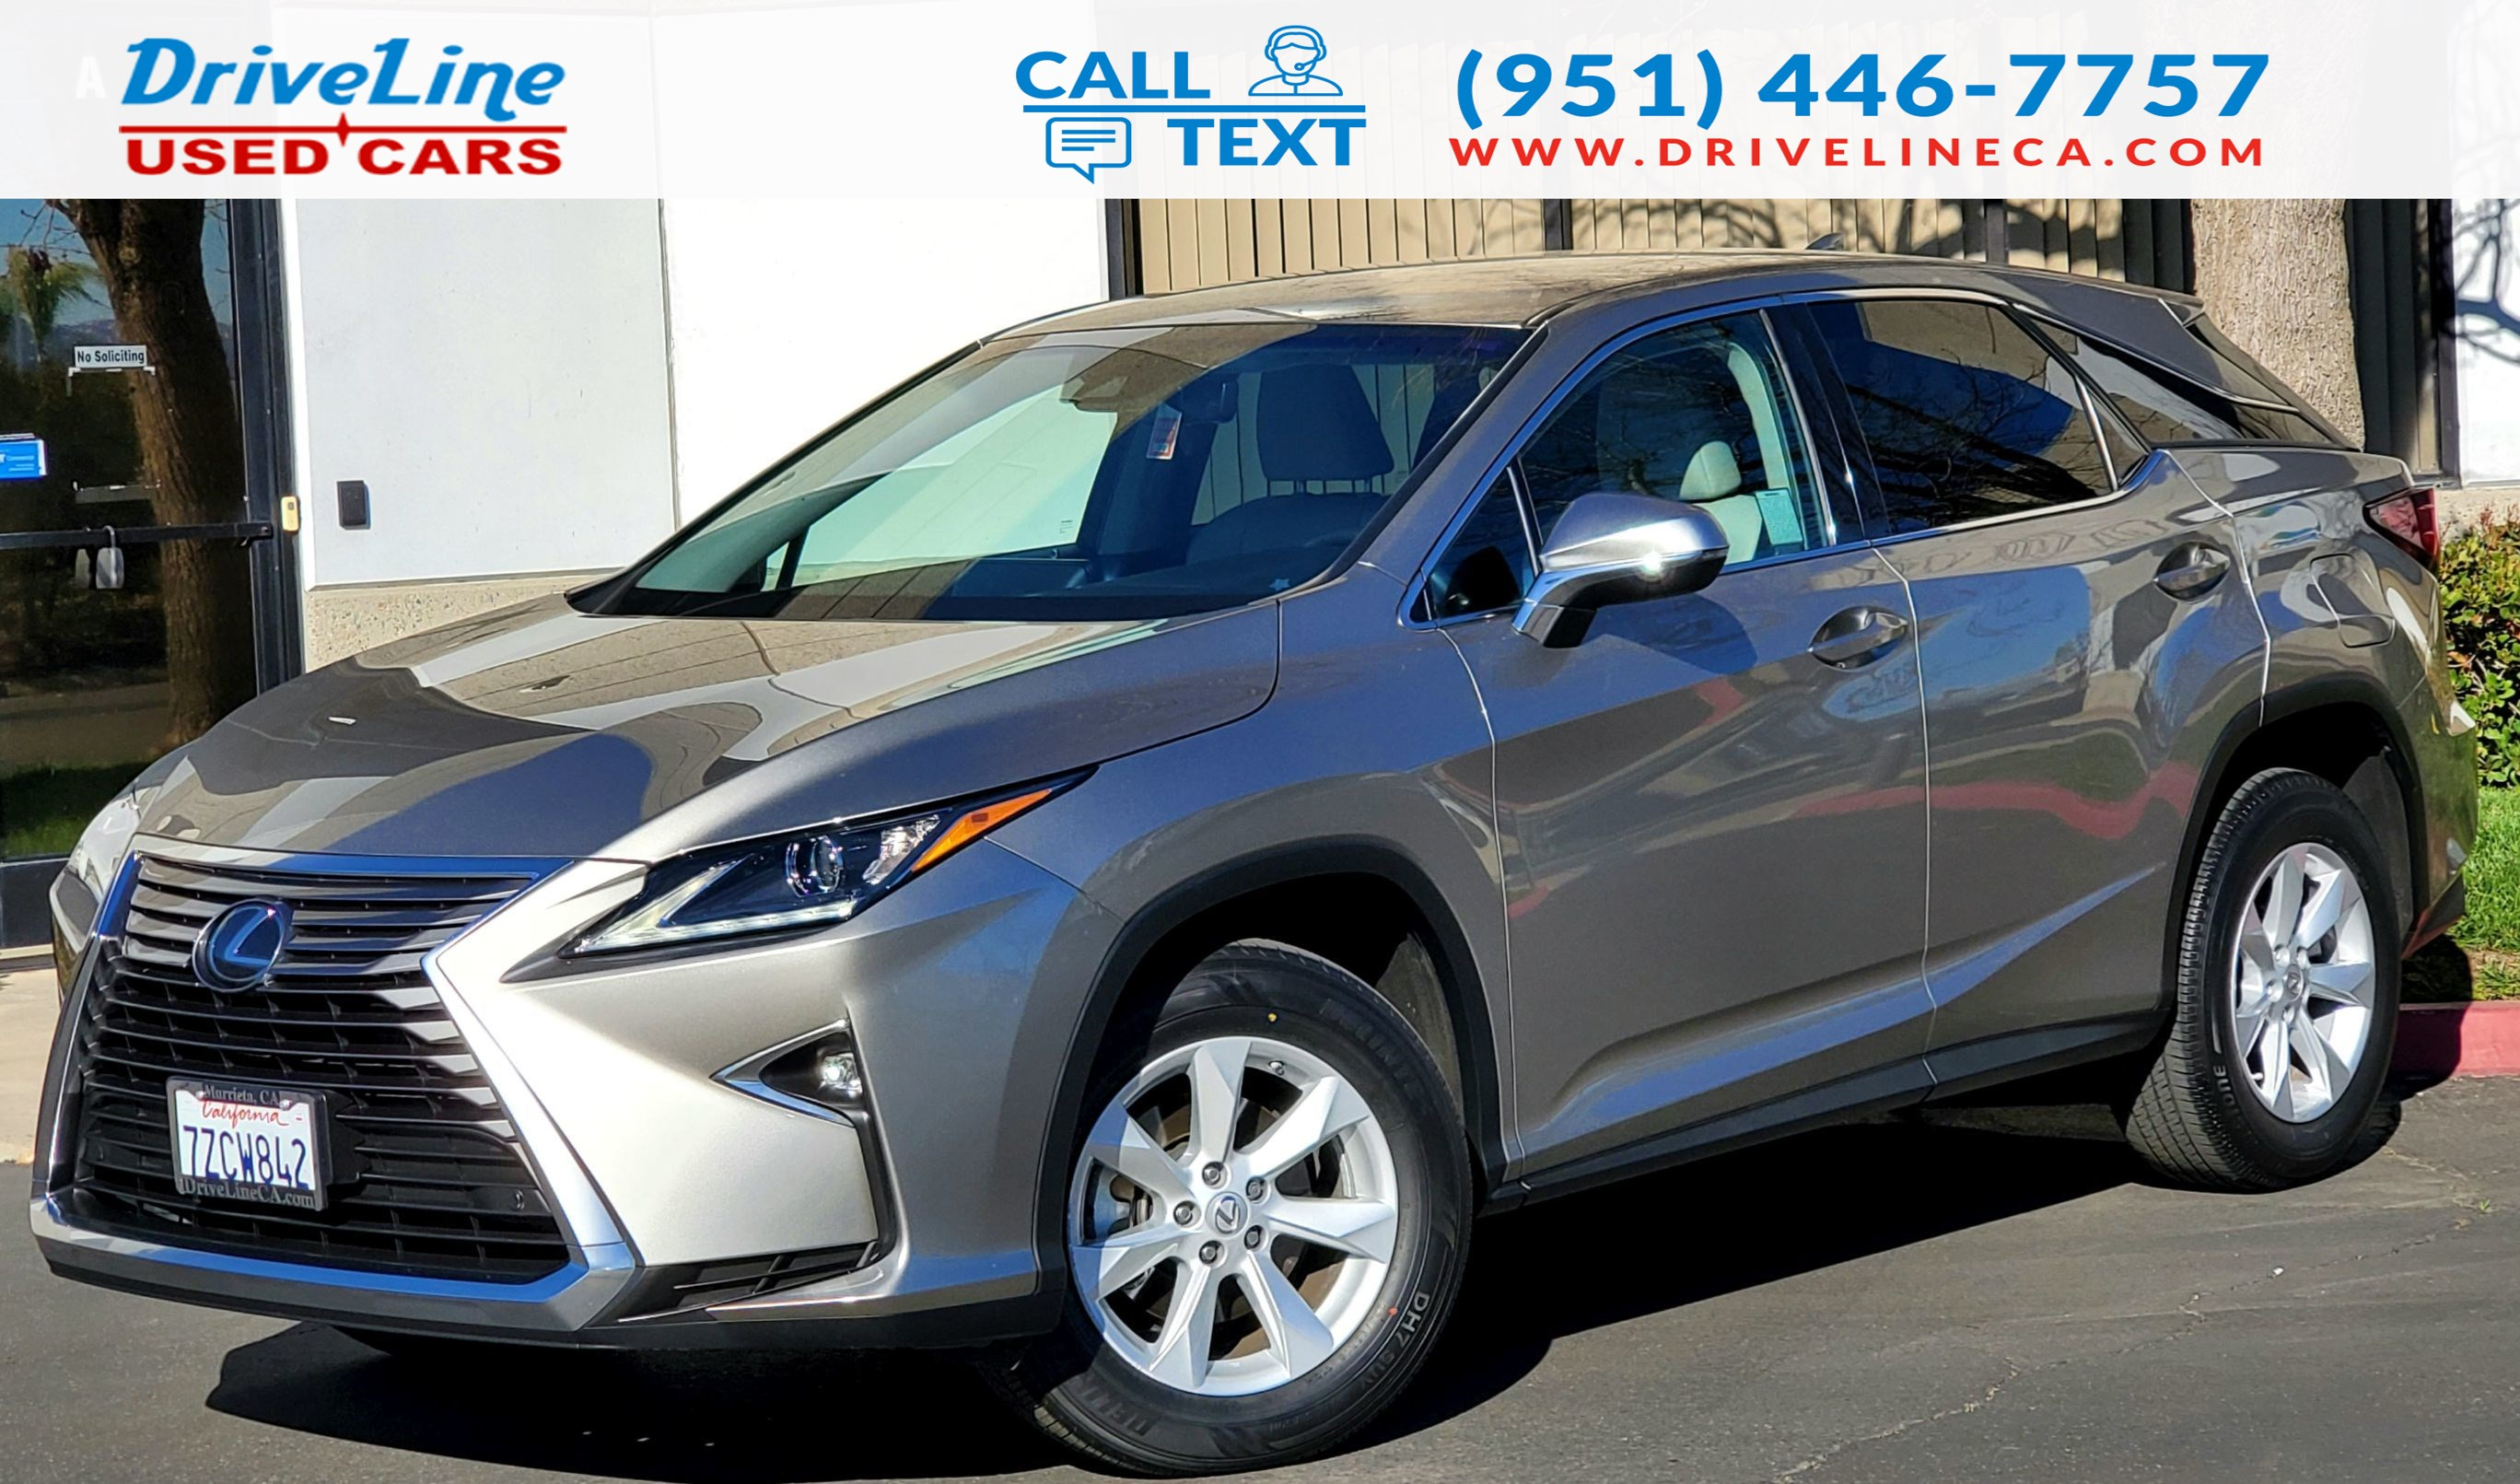 2017 Lexus RX RX 350 - Heated Seats - $43,660 MSRP